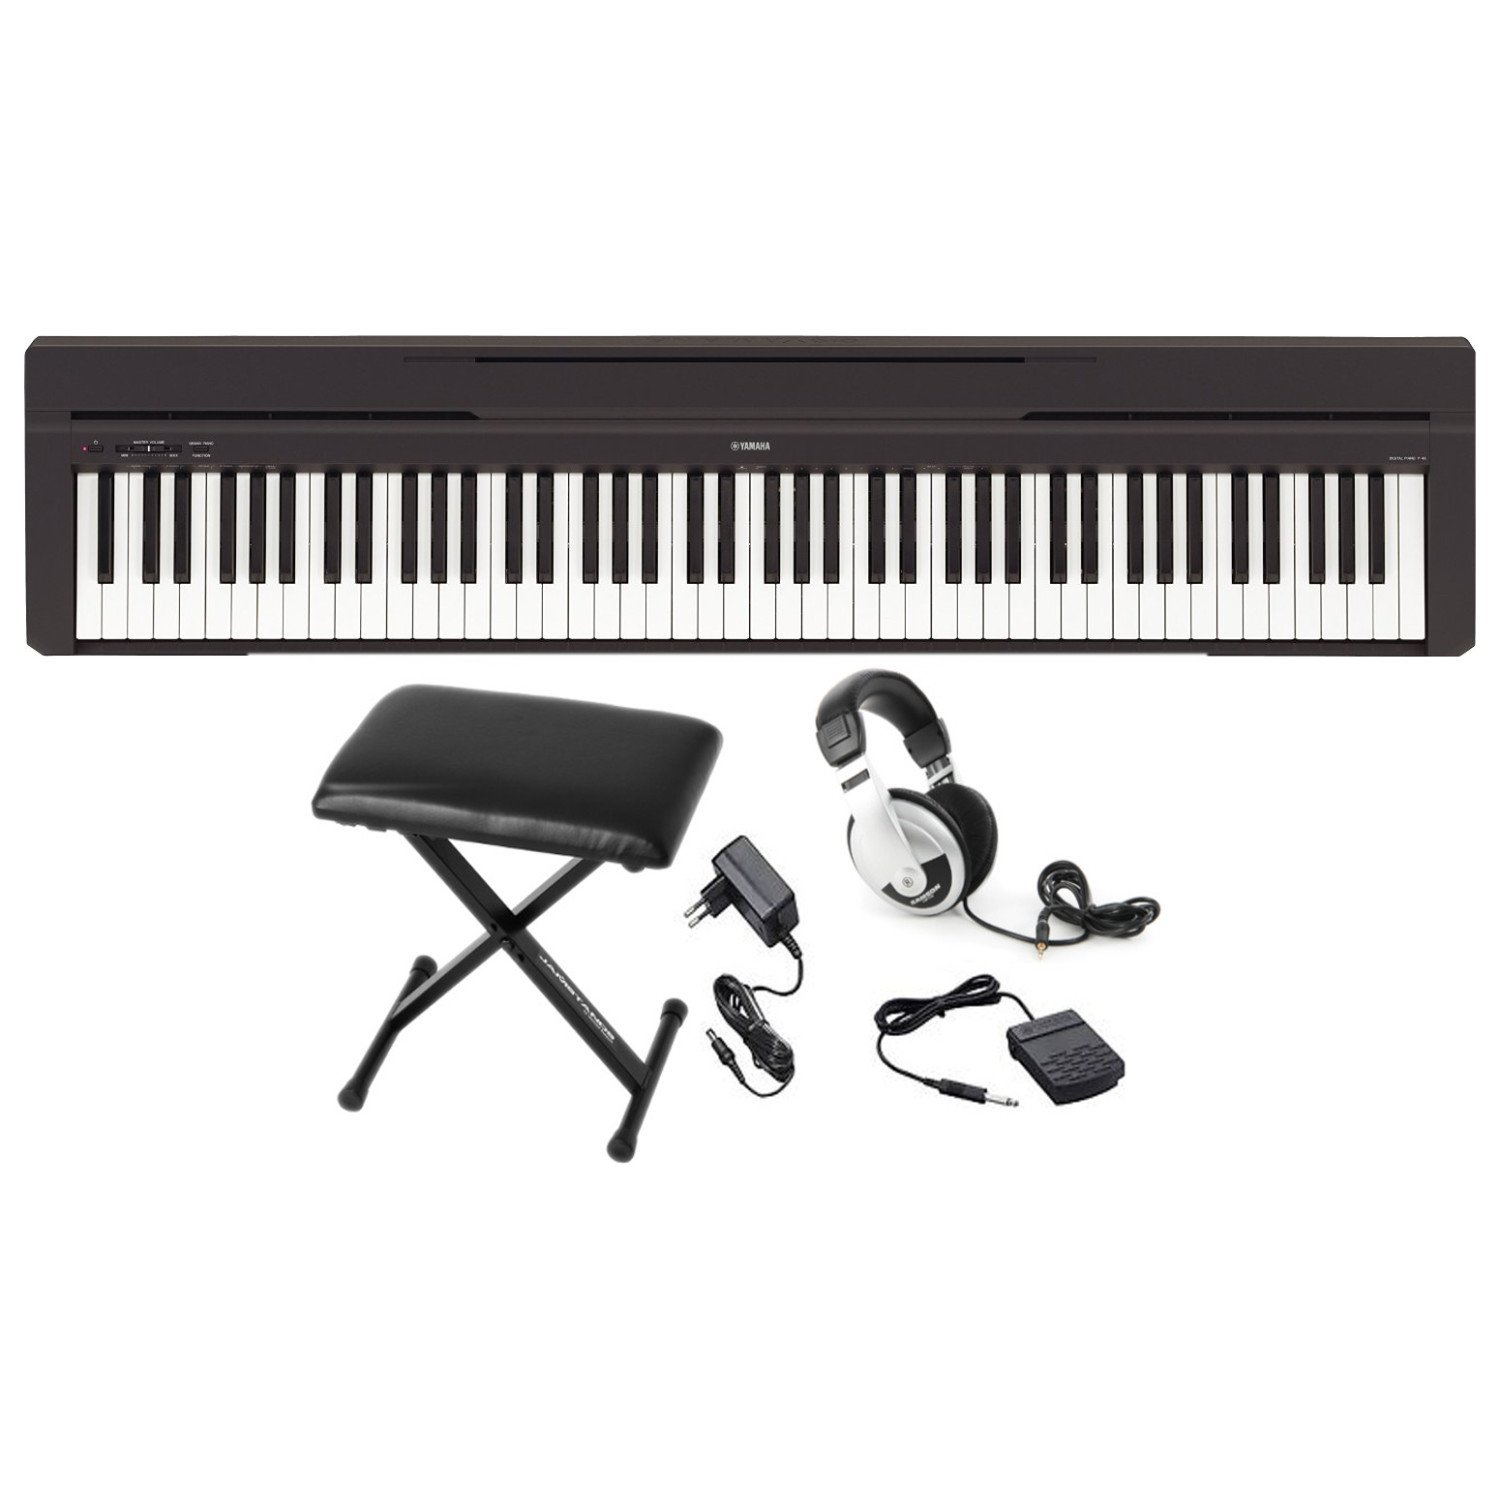 Yamaha P45B 88 Weighted Keys Graded Hammer Standard Contemporary Digital Piano Keyboard in Black with AMW Stereo Sampling Sound withYamaha PKBB1 Keyboard Bench And Samson Open-Ear Headphone by Yamahama (Image #1)